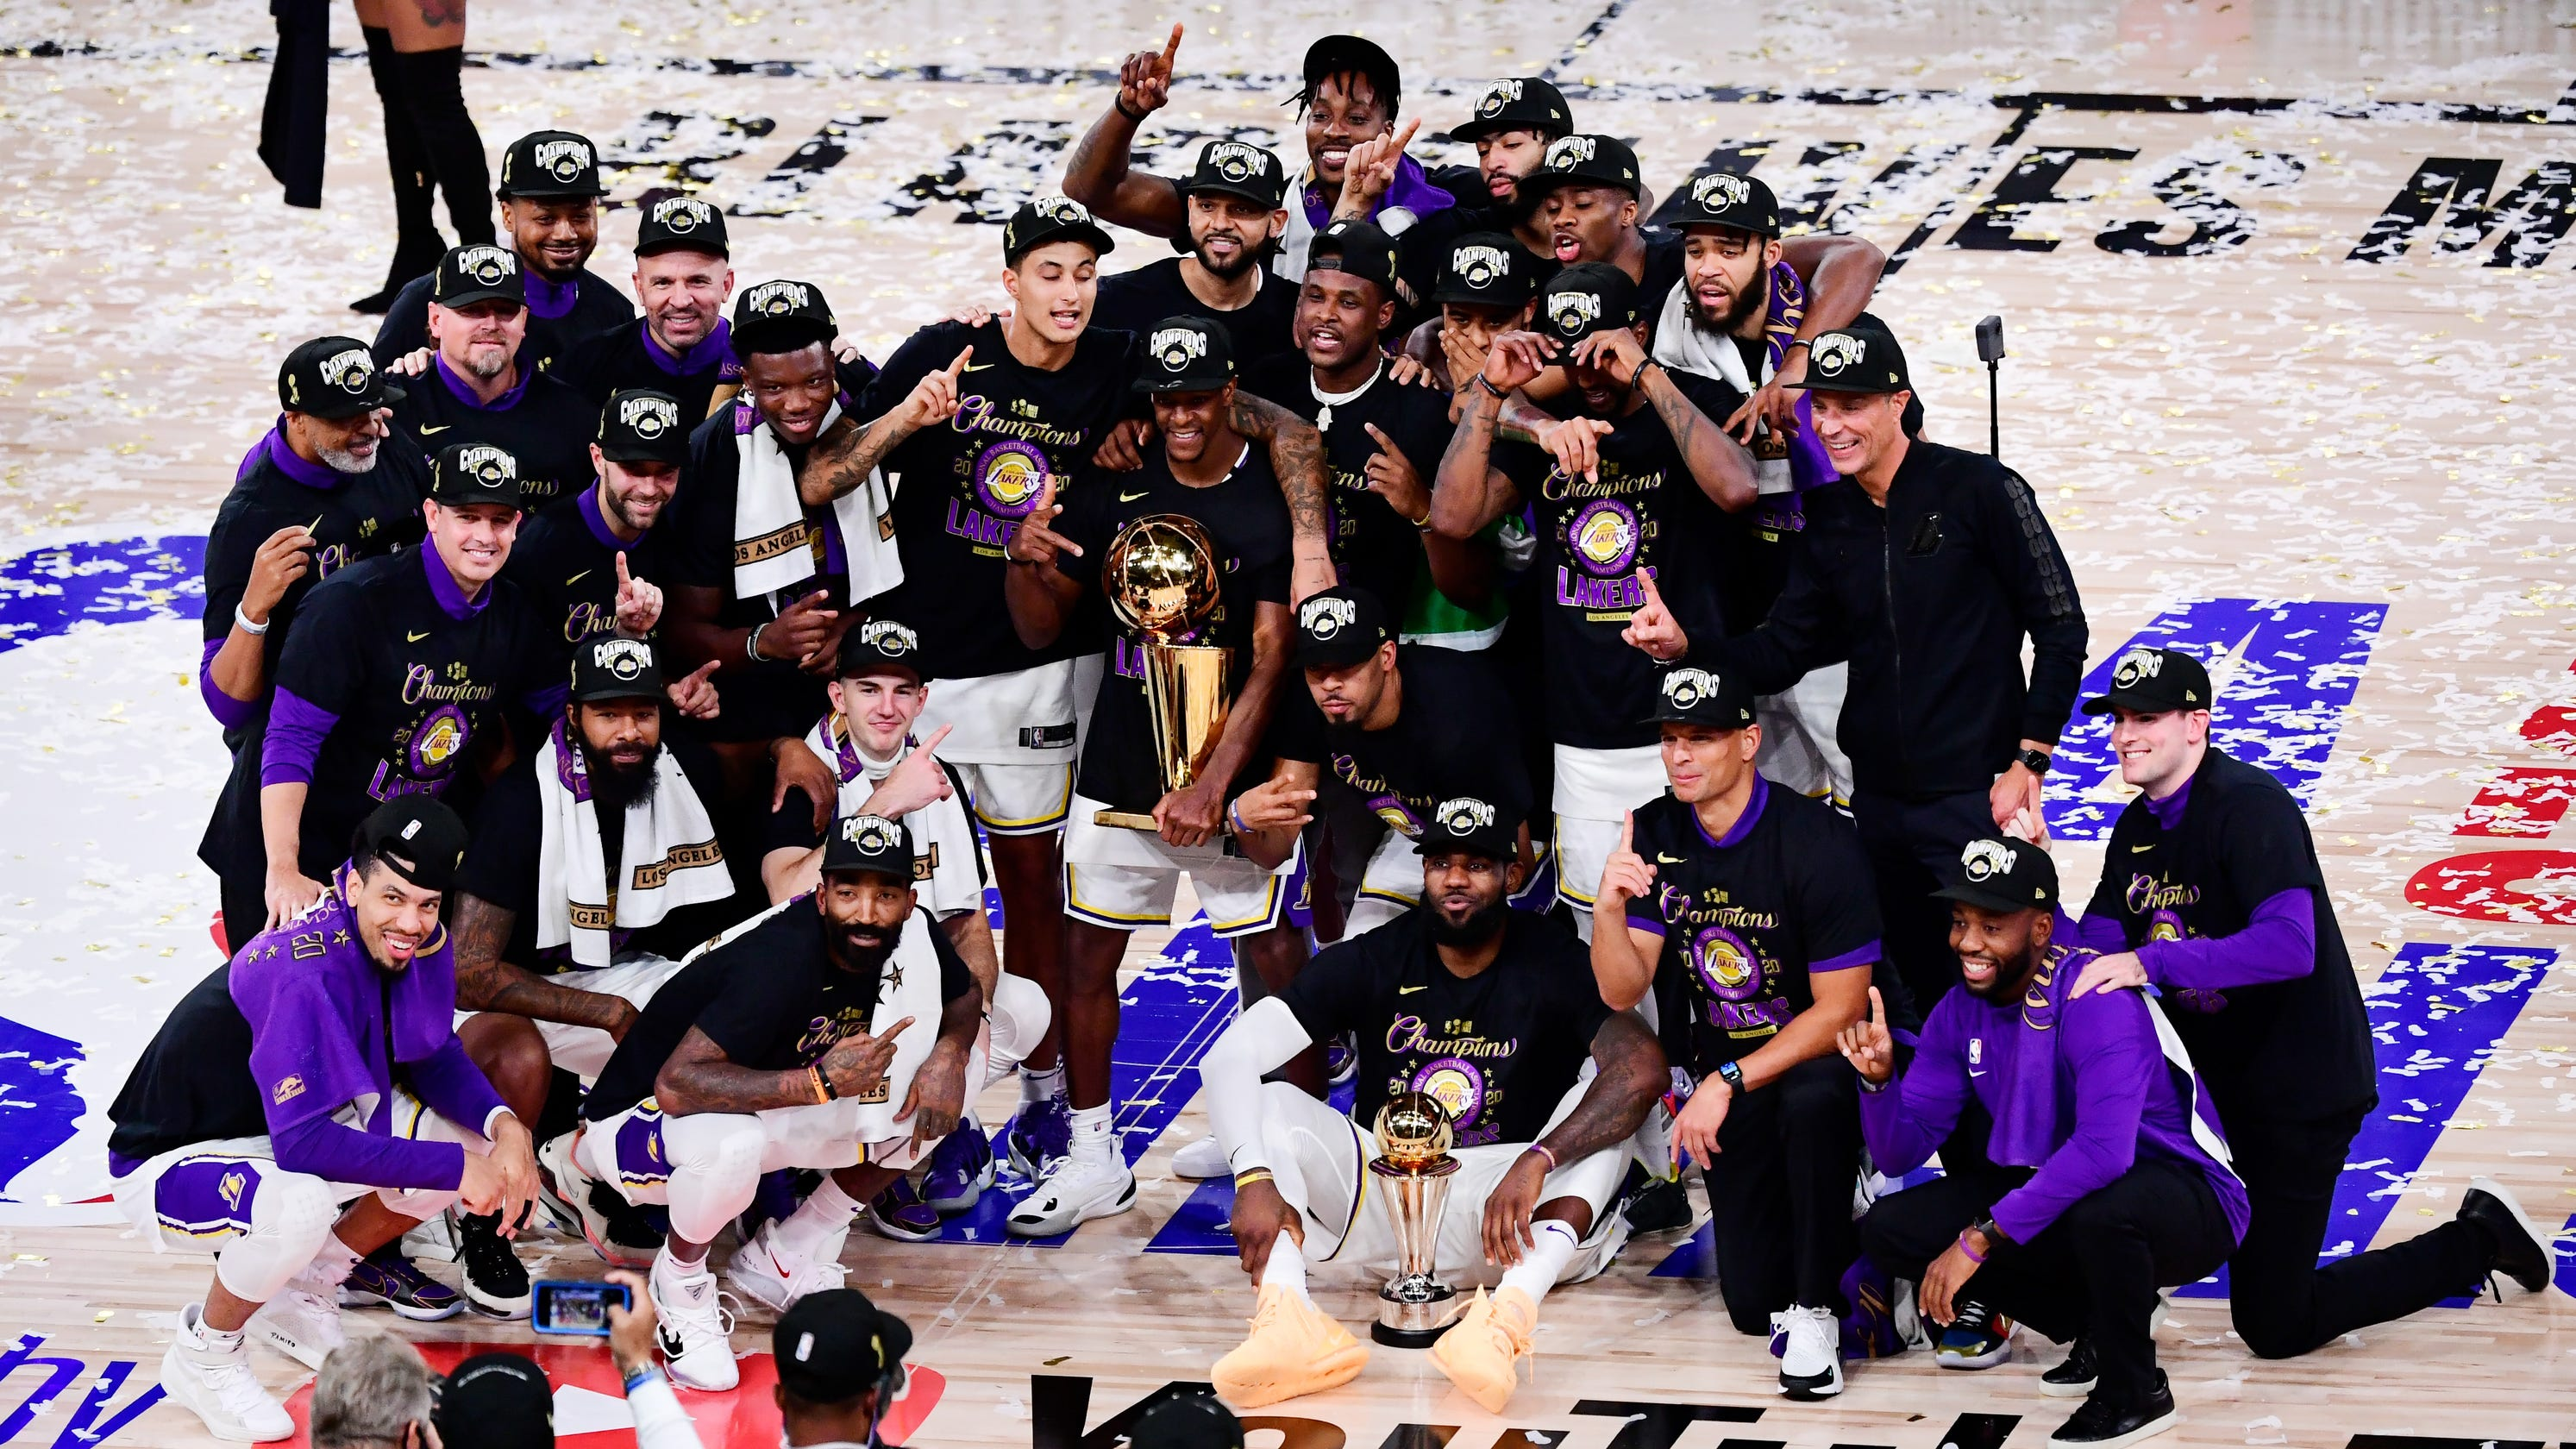 Lakers close out Heat with Game 6 rout for record-tying 17th NBA championship